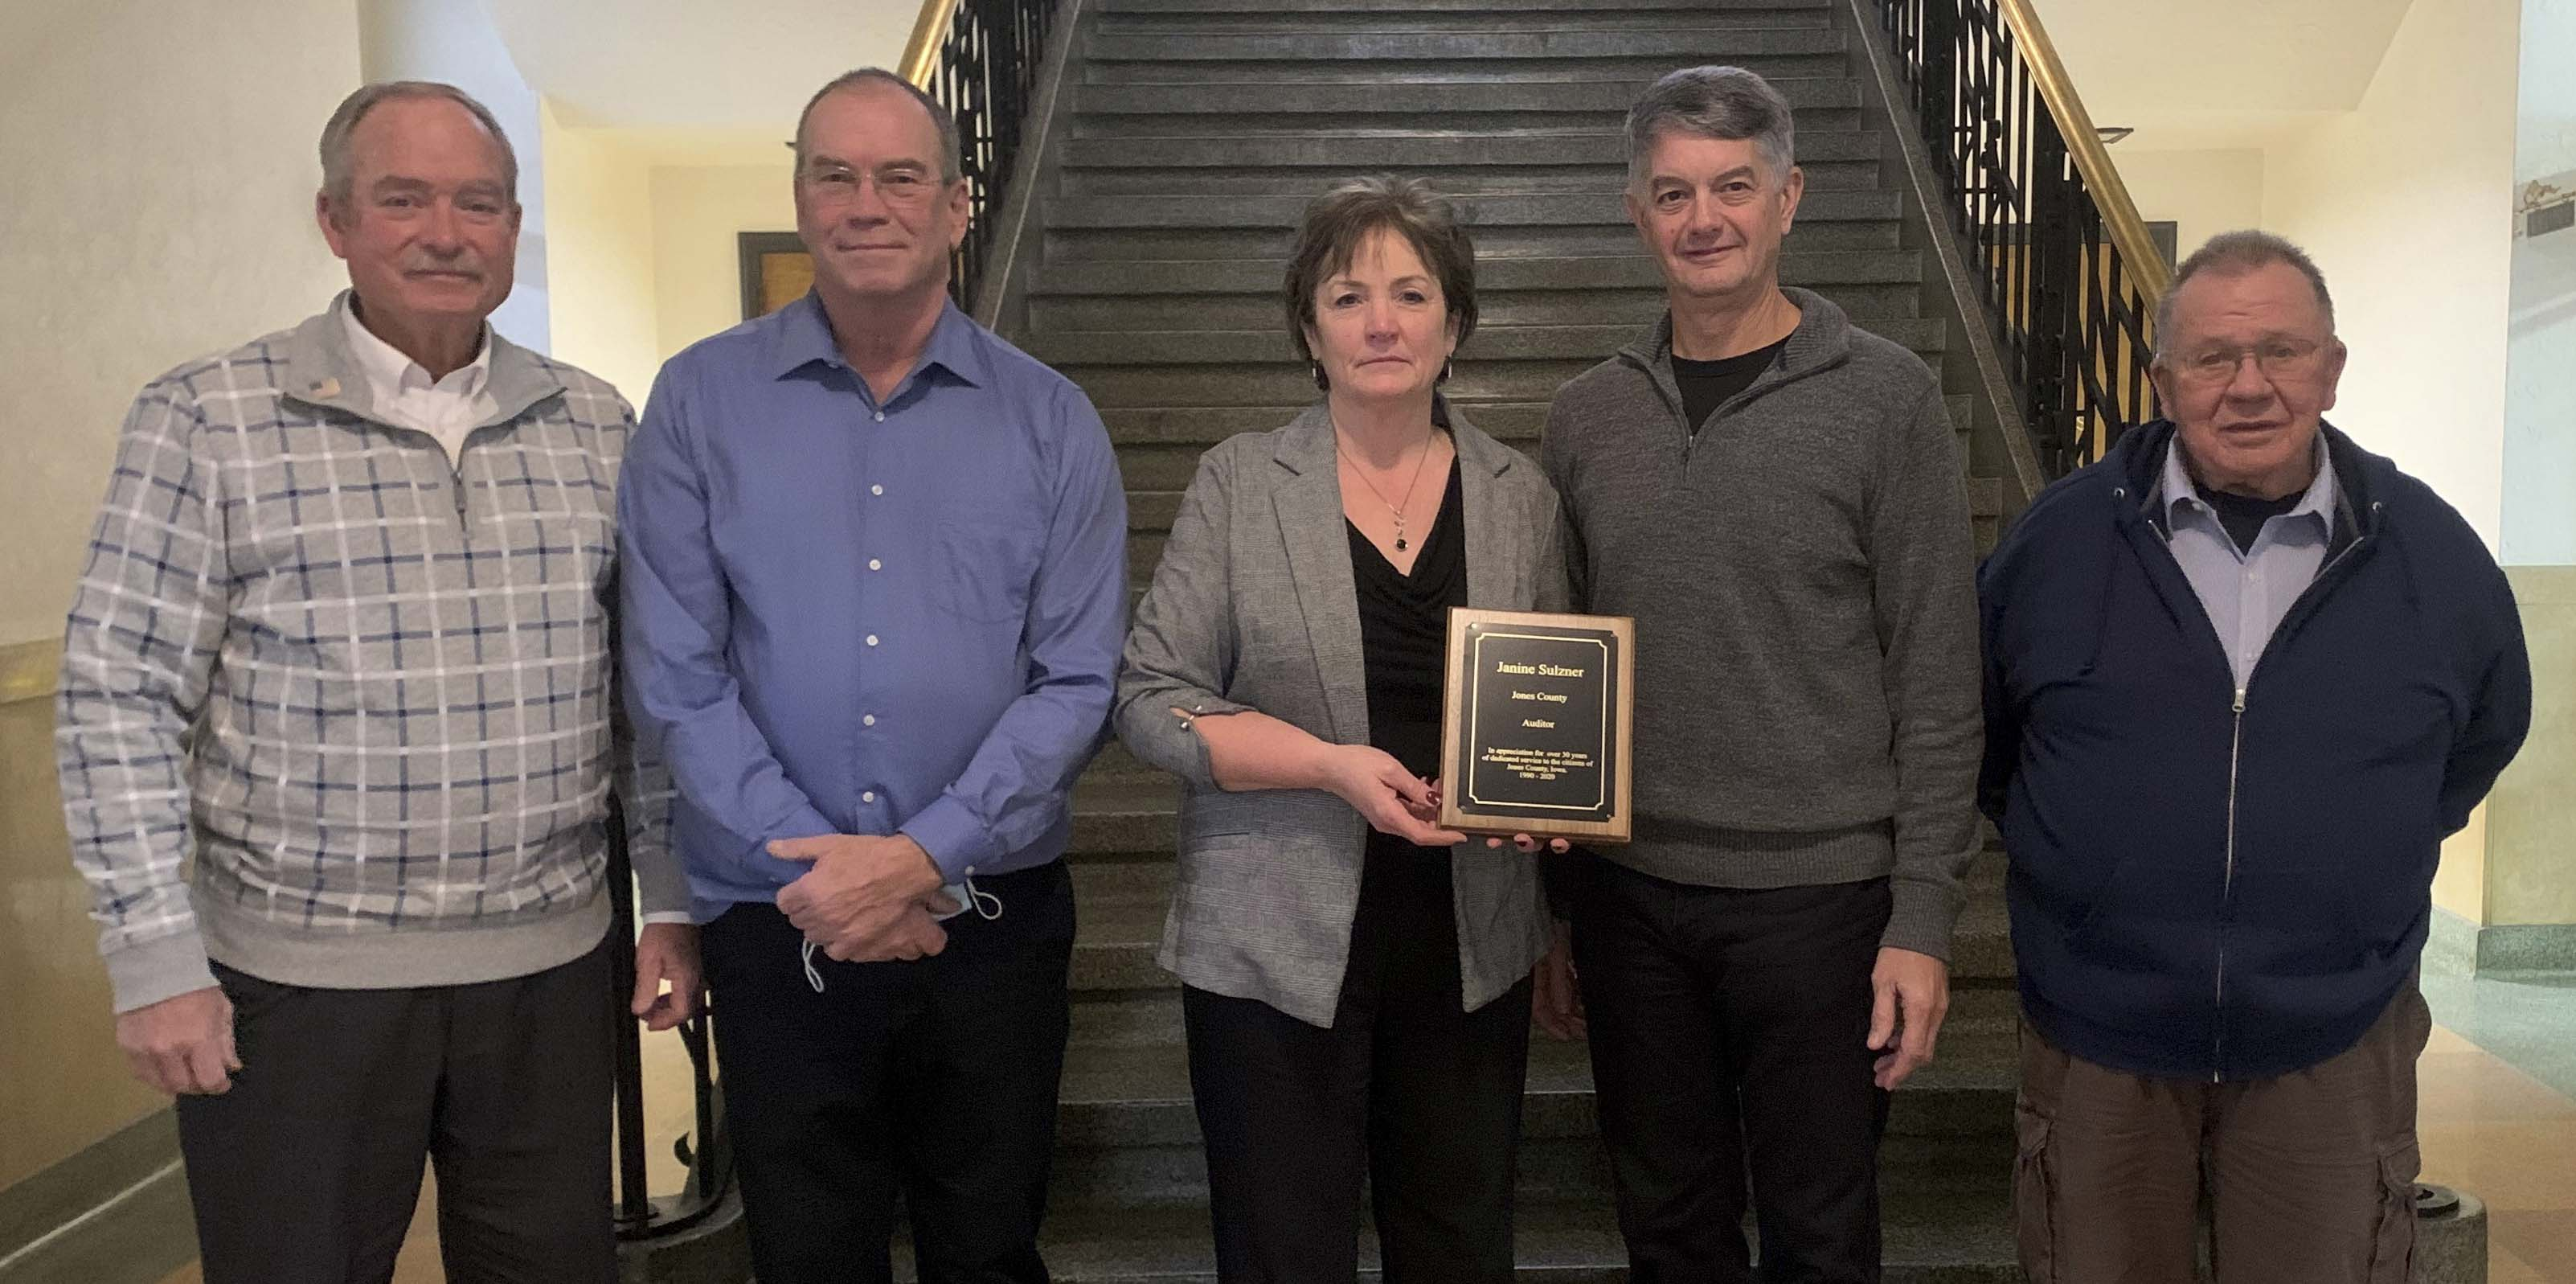 The Jones County Supervisors presented Janine Sulzner with a plaque, thanking her for her 30 years of service and dedication to the county as auditor. Sulzner retired on Dec. 31. From left are Ned Rohwedder, Jon Zirkelbach, Sulzner, Joe Oswald, and Lloyd Eaken. (Photo submitted)